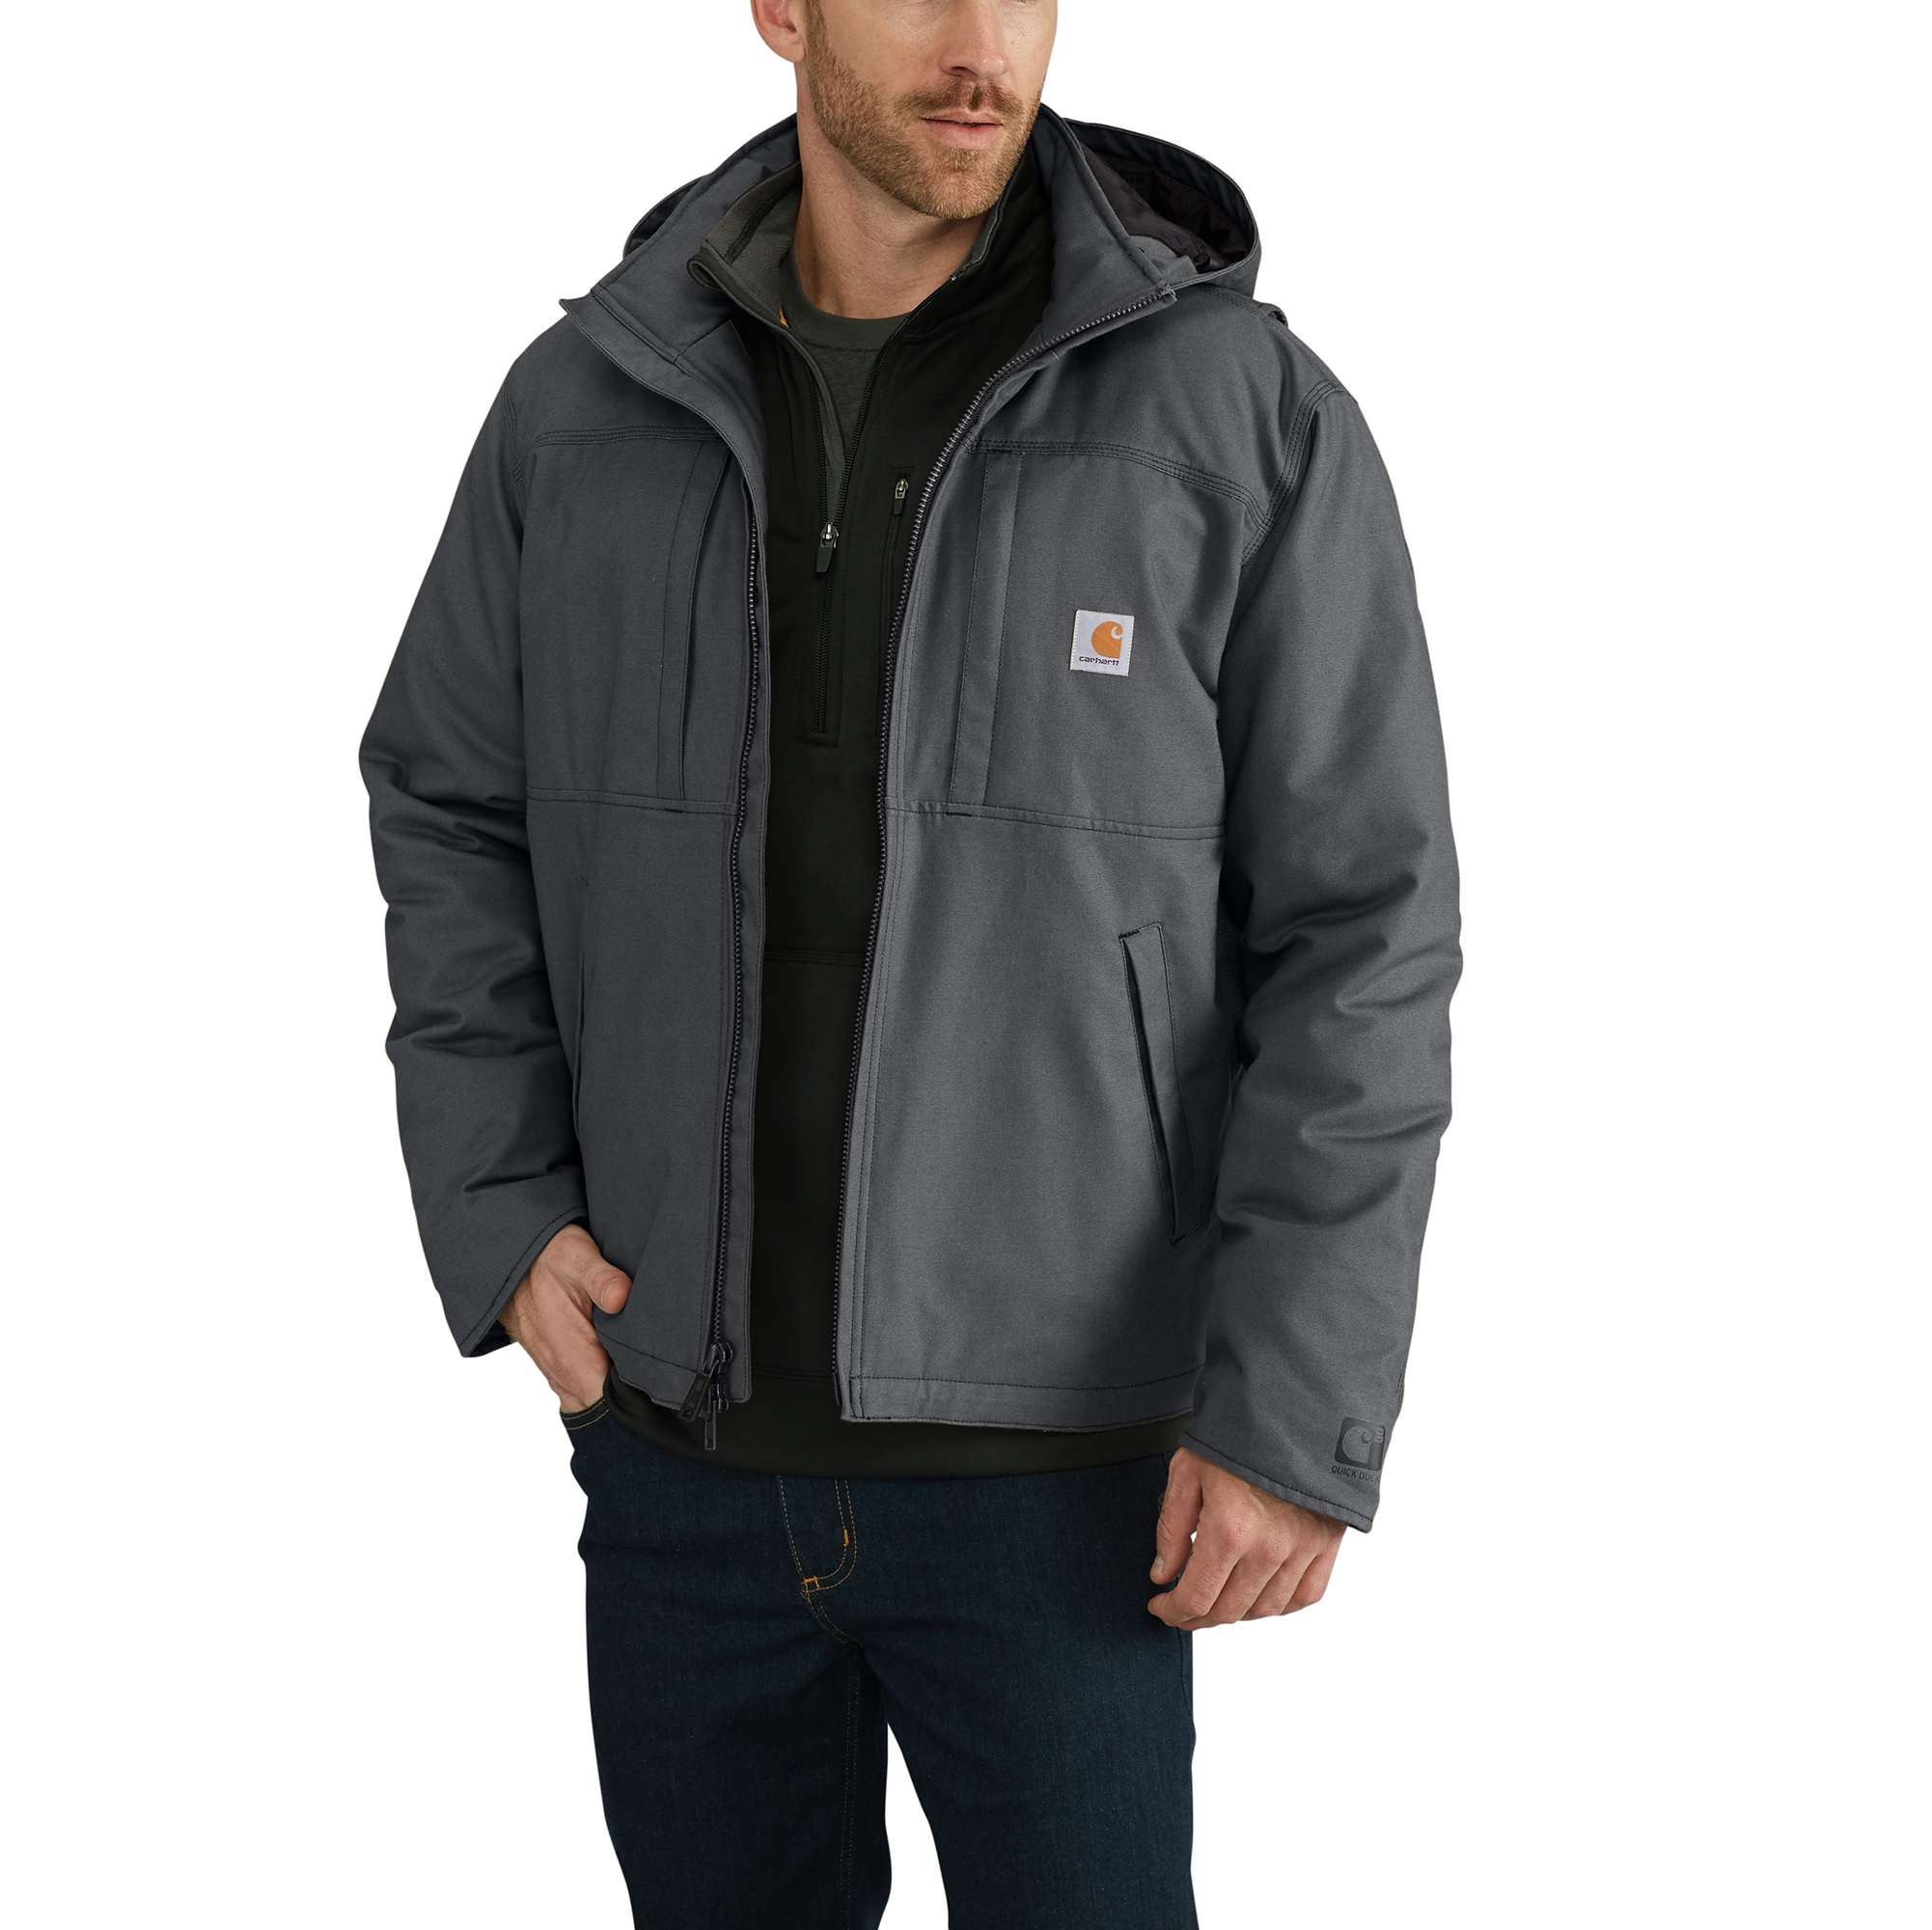 99dee4e694 Men s Full Swing® Cryder Jacket 102207